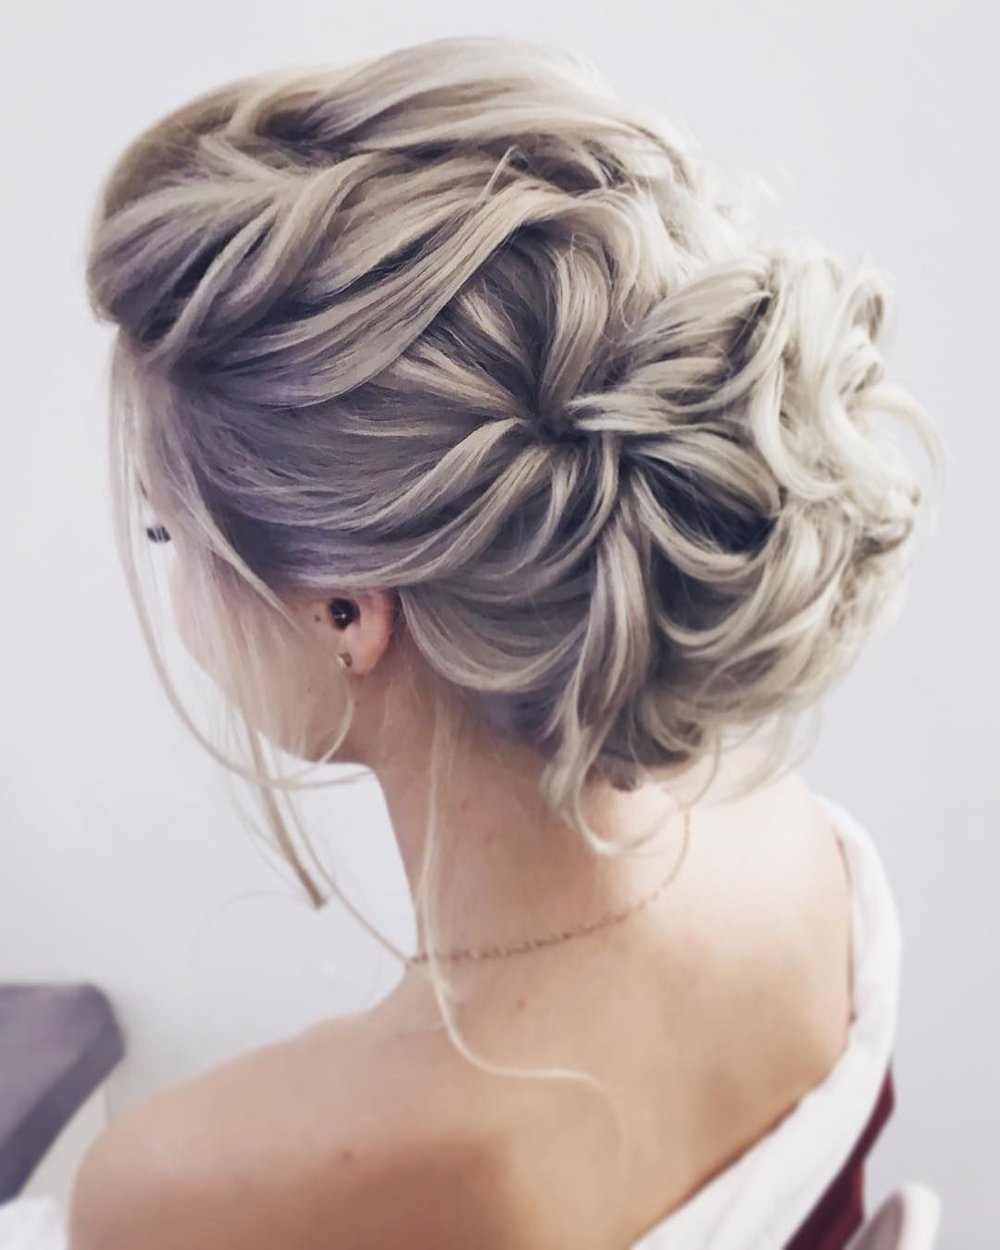 wedding-guest-hair-braid-style-beauty-updo-formal-messy-curly.jpg